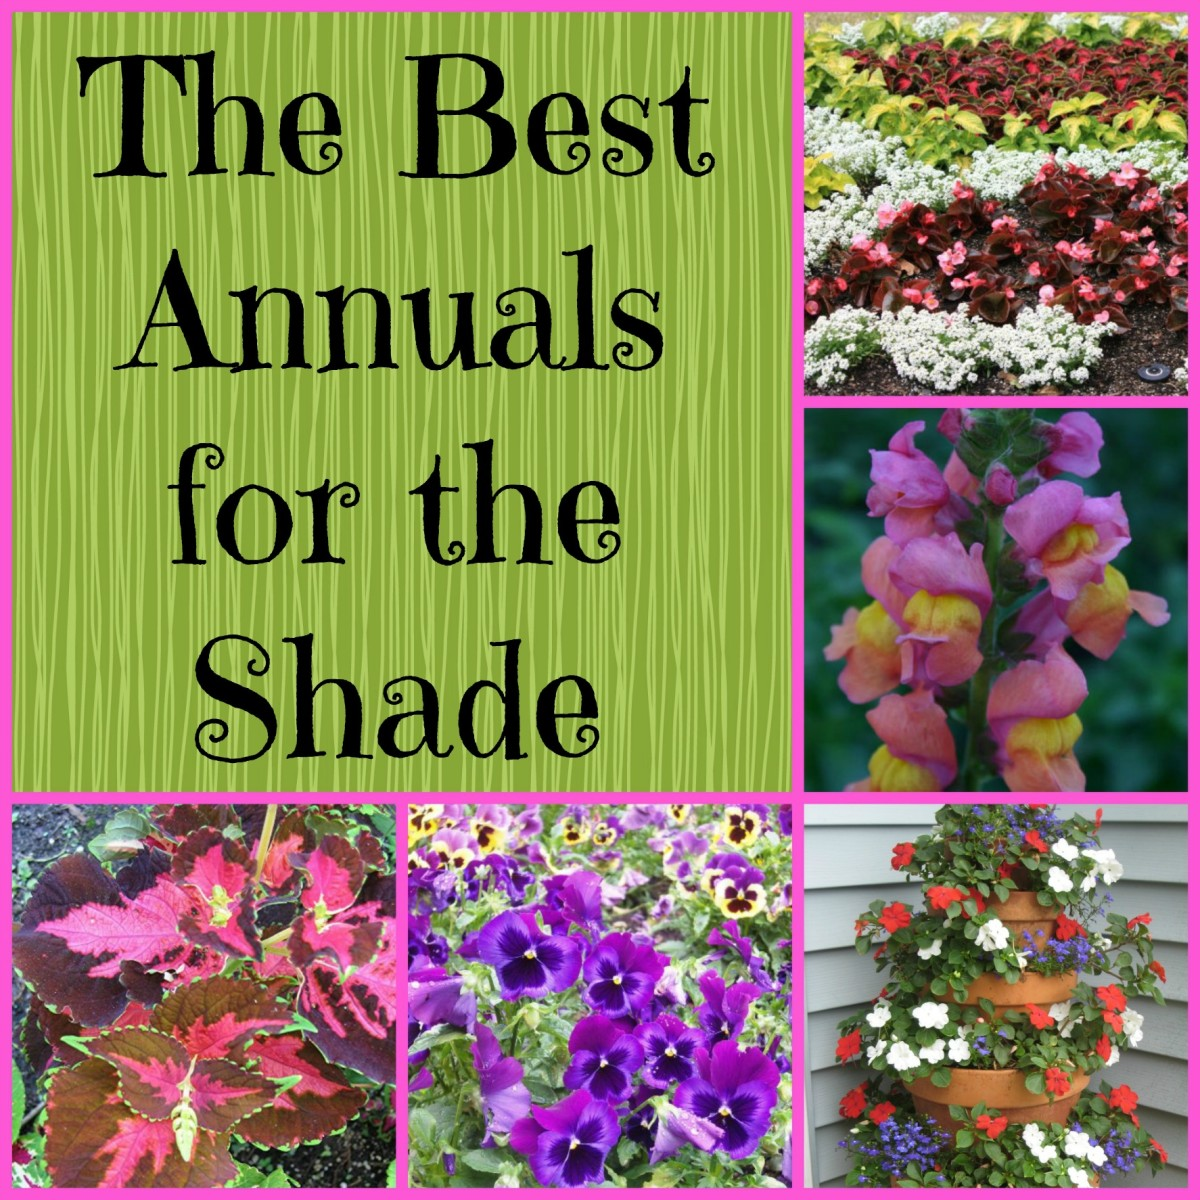 Gardening In The Shade 9 Annual Plants For Shady Areas Dengarden